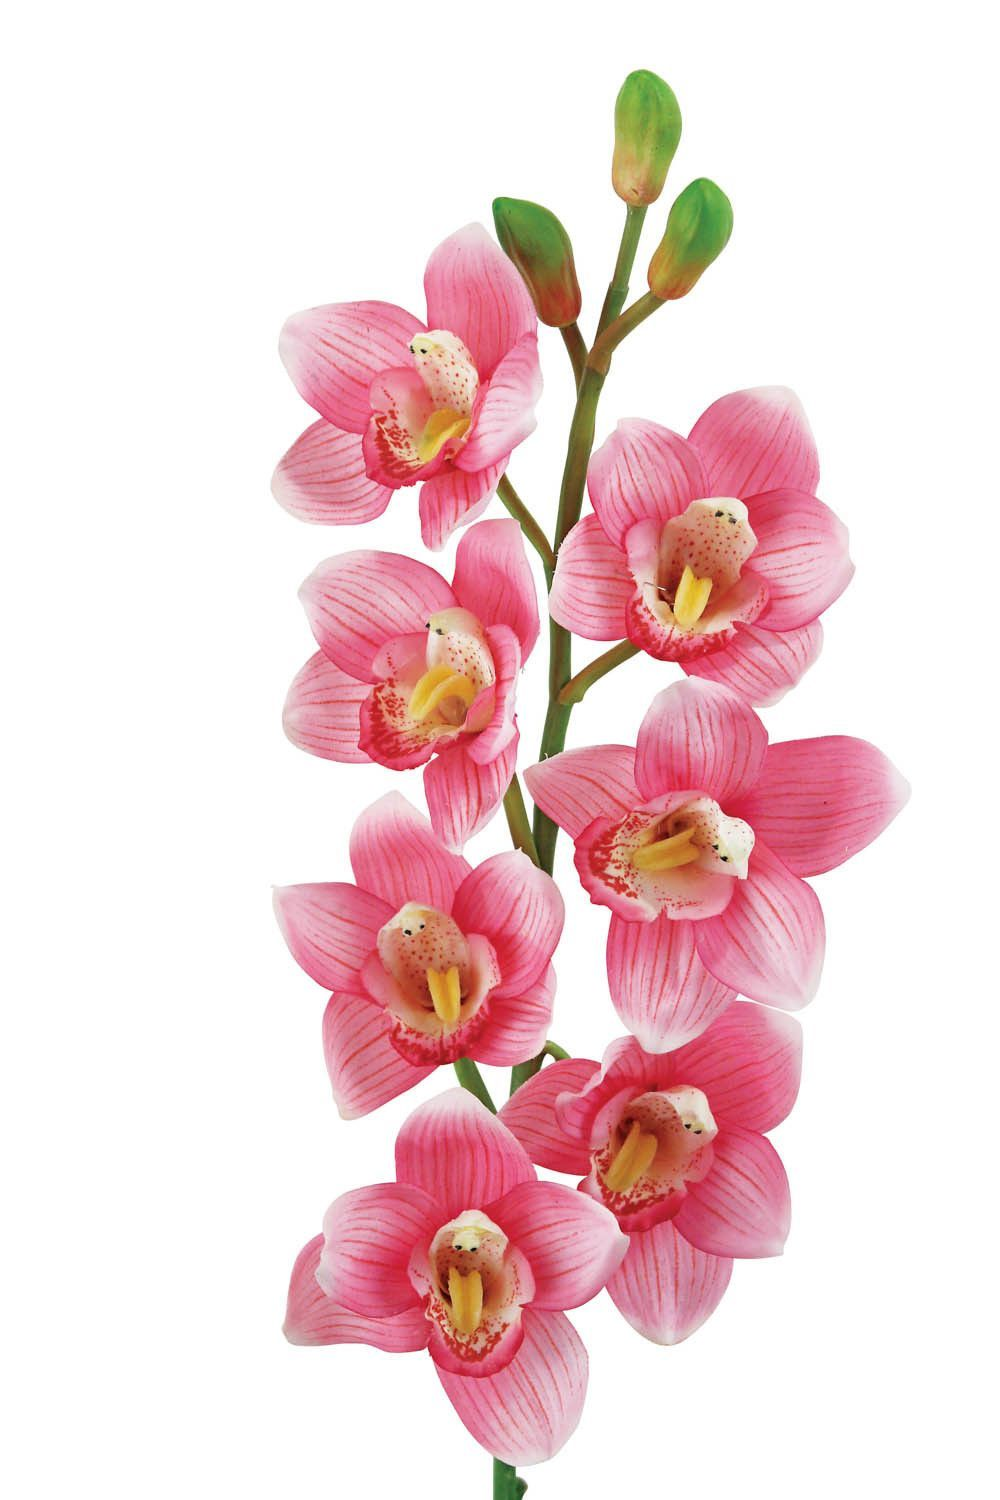 Laura Cole 31 Cymbidium Orchid Silk Flower Stem Set Of 12 Cymbidium Orchids Orchids Pink Flower Pictures